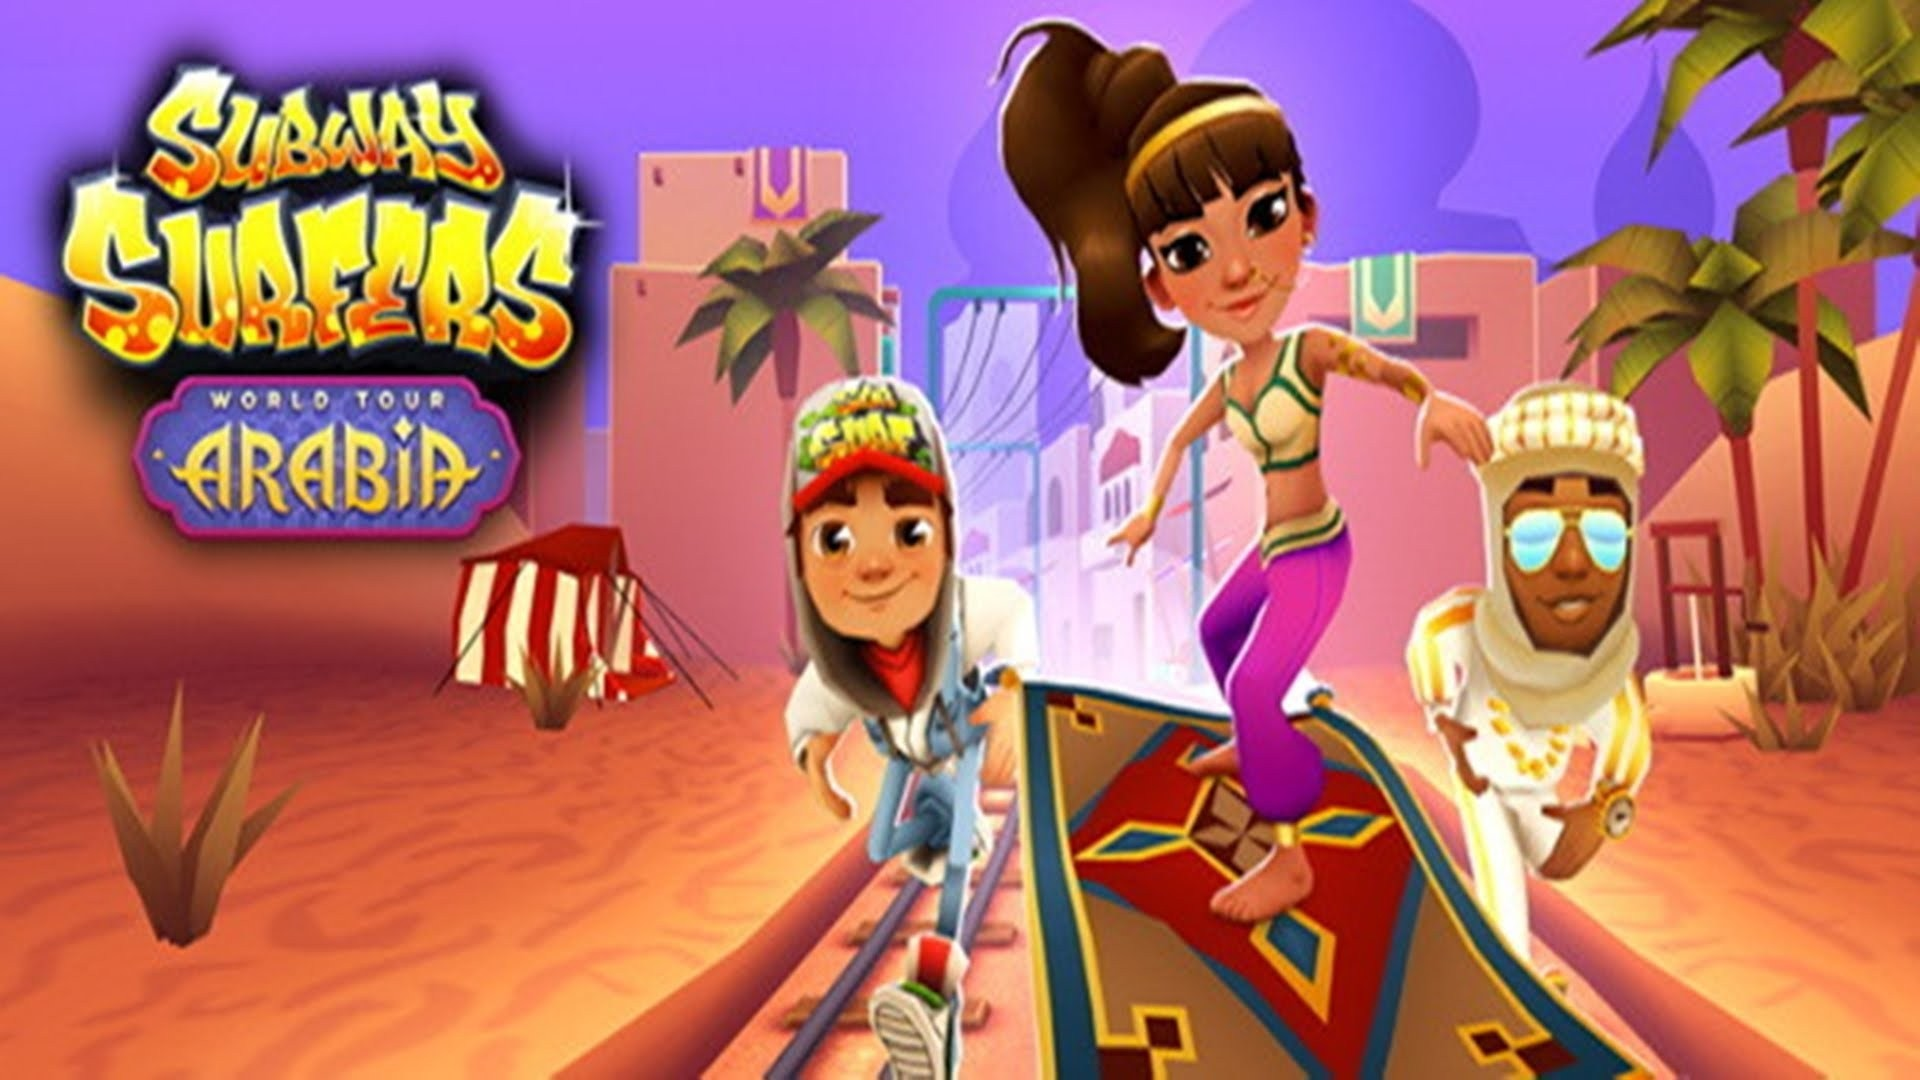 Power ups and challenges in Subway Surfers Arabia